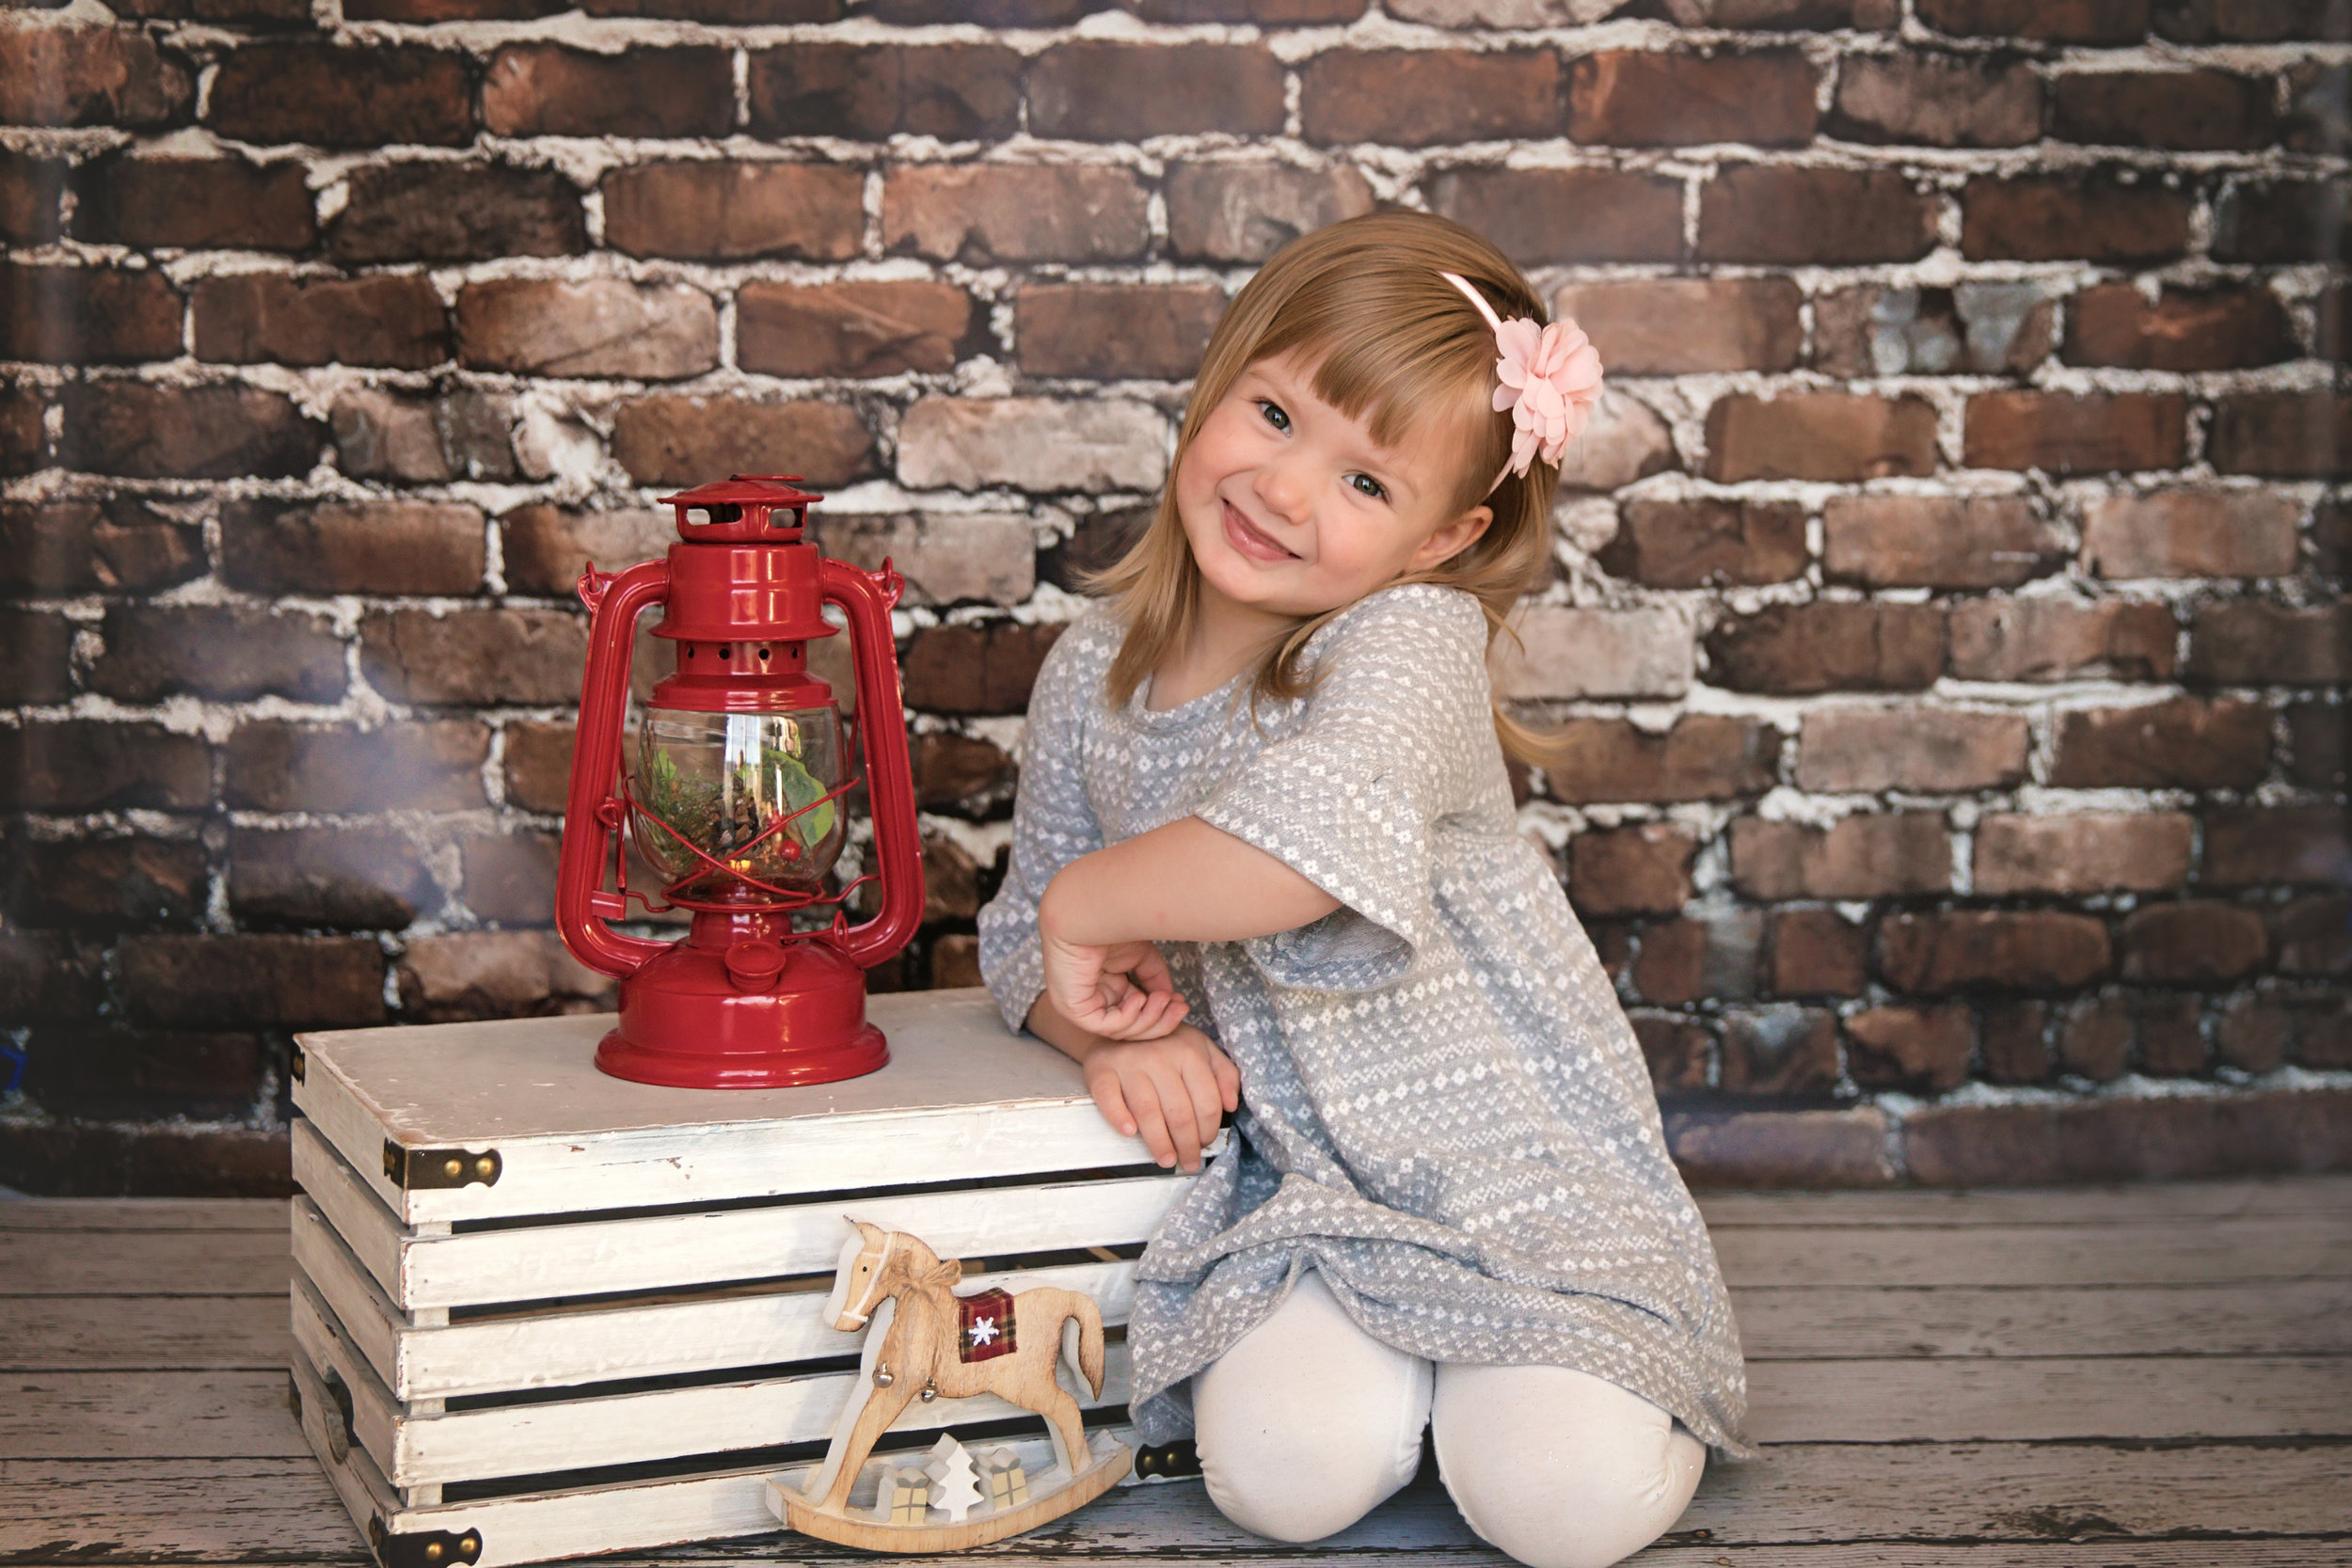 Sweet little girl smiling in this Christmas inspired photoshoot. Calgary family photographer. Milashka Photography